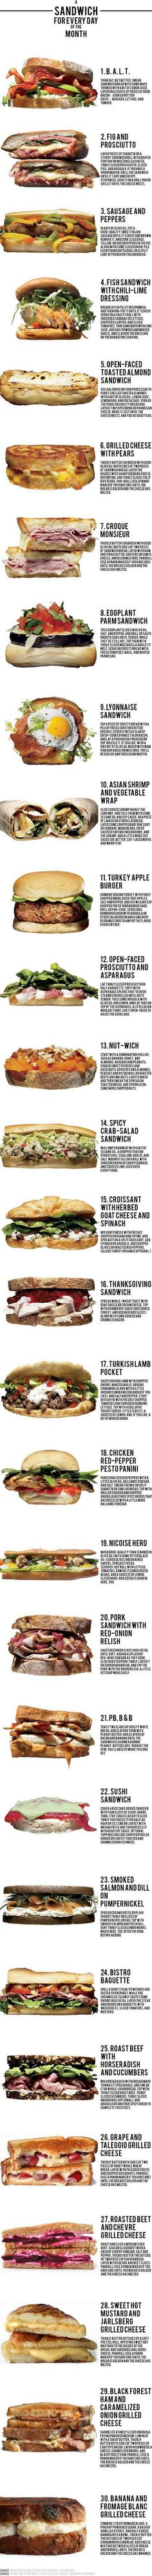 Sandwich Recipes For Everyday In A Month.